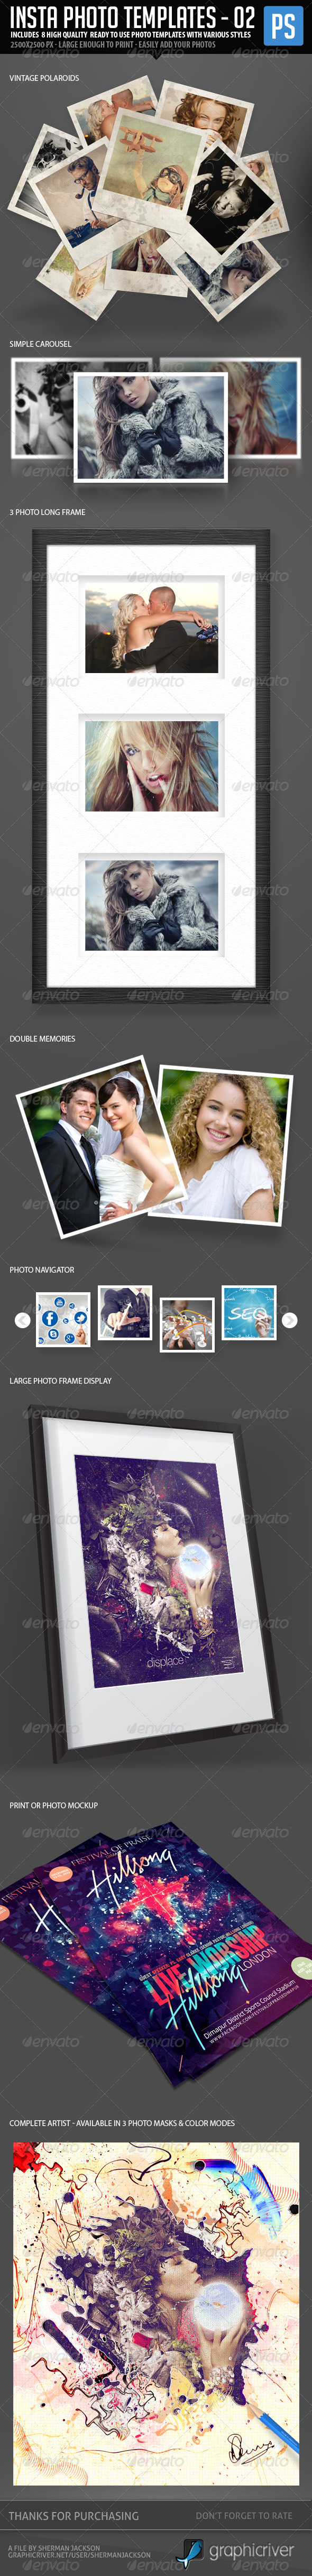 Insta Photo Templates (8 in 1) - Photo Templates Graphics